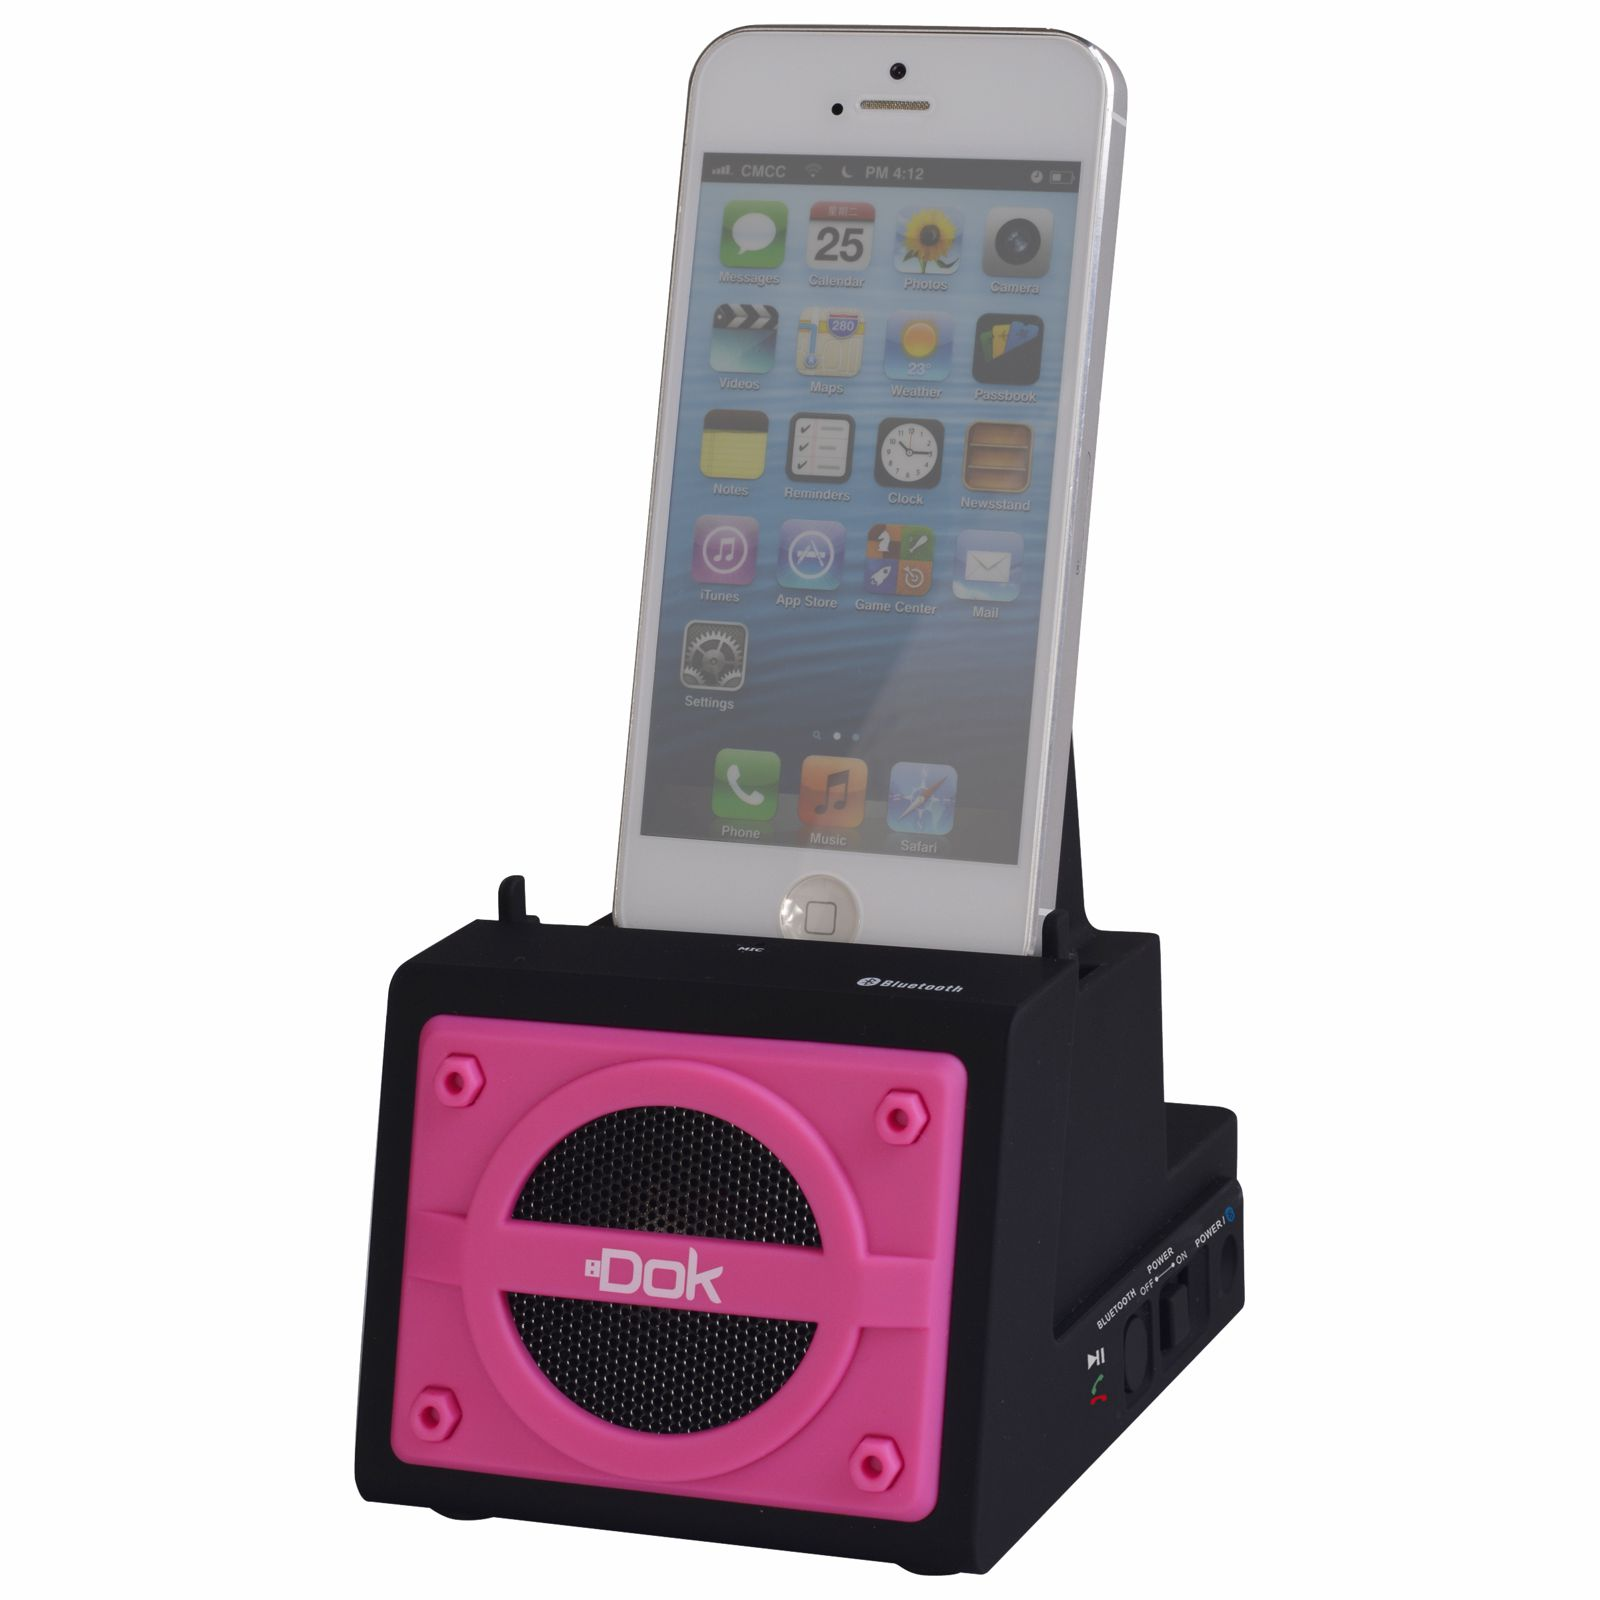 CR13PK - 2 Port Smart Phone Charger with Bluetooth Speaker, Speaker Phone, Rechargeable Battery (Pink Face)